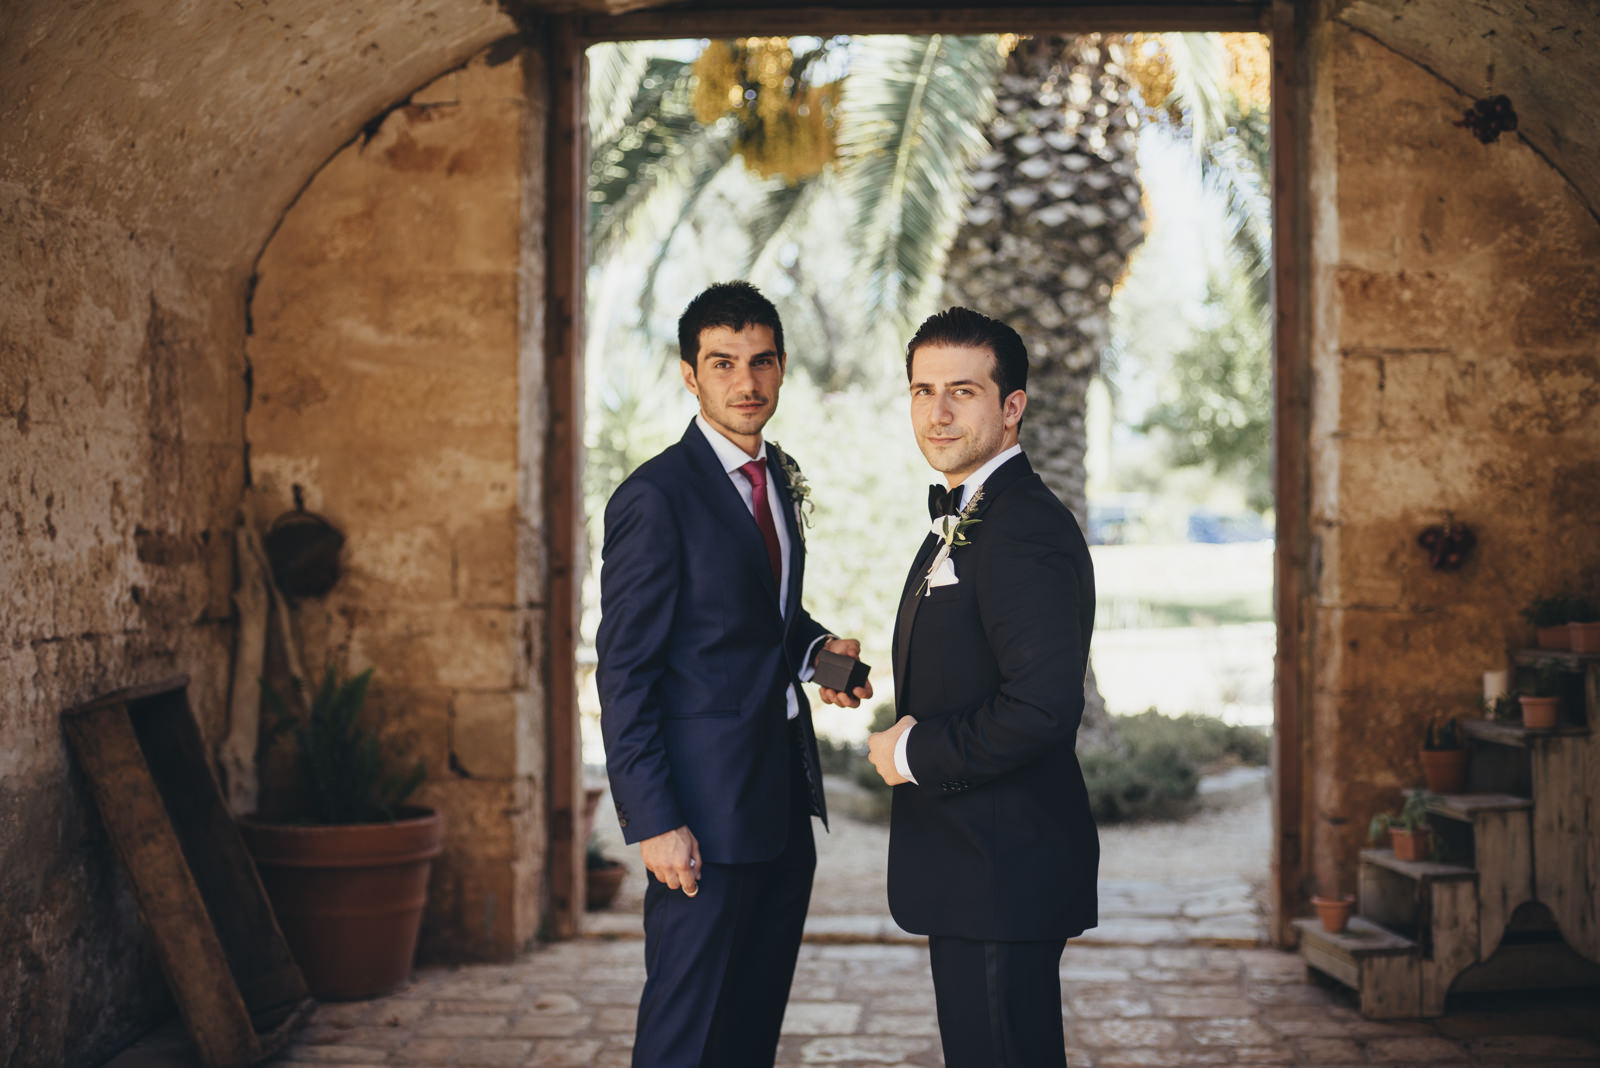 the groom with his best man